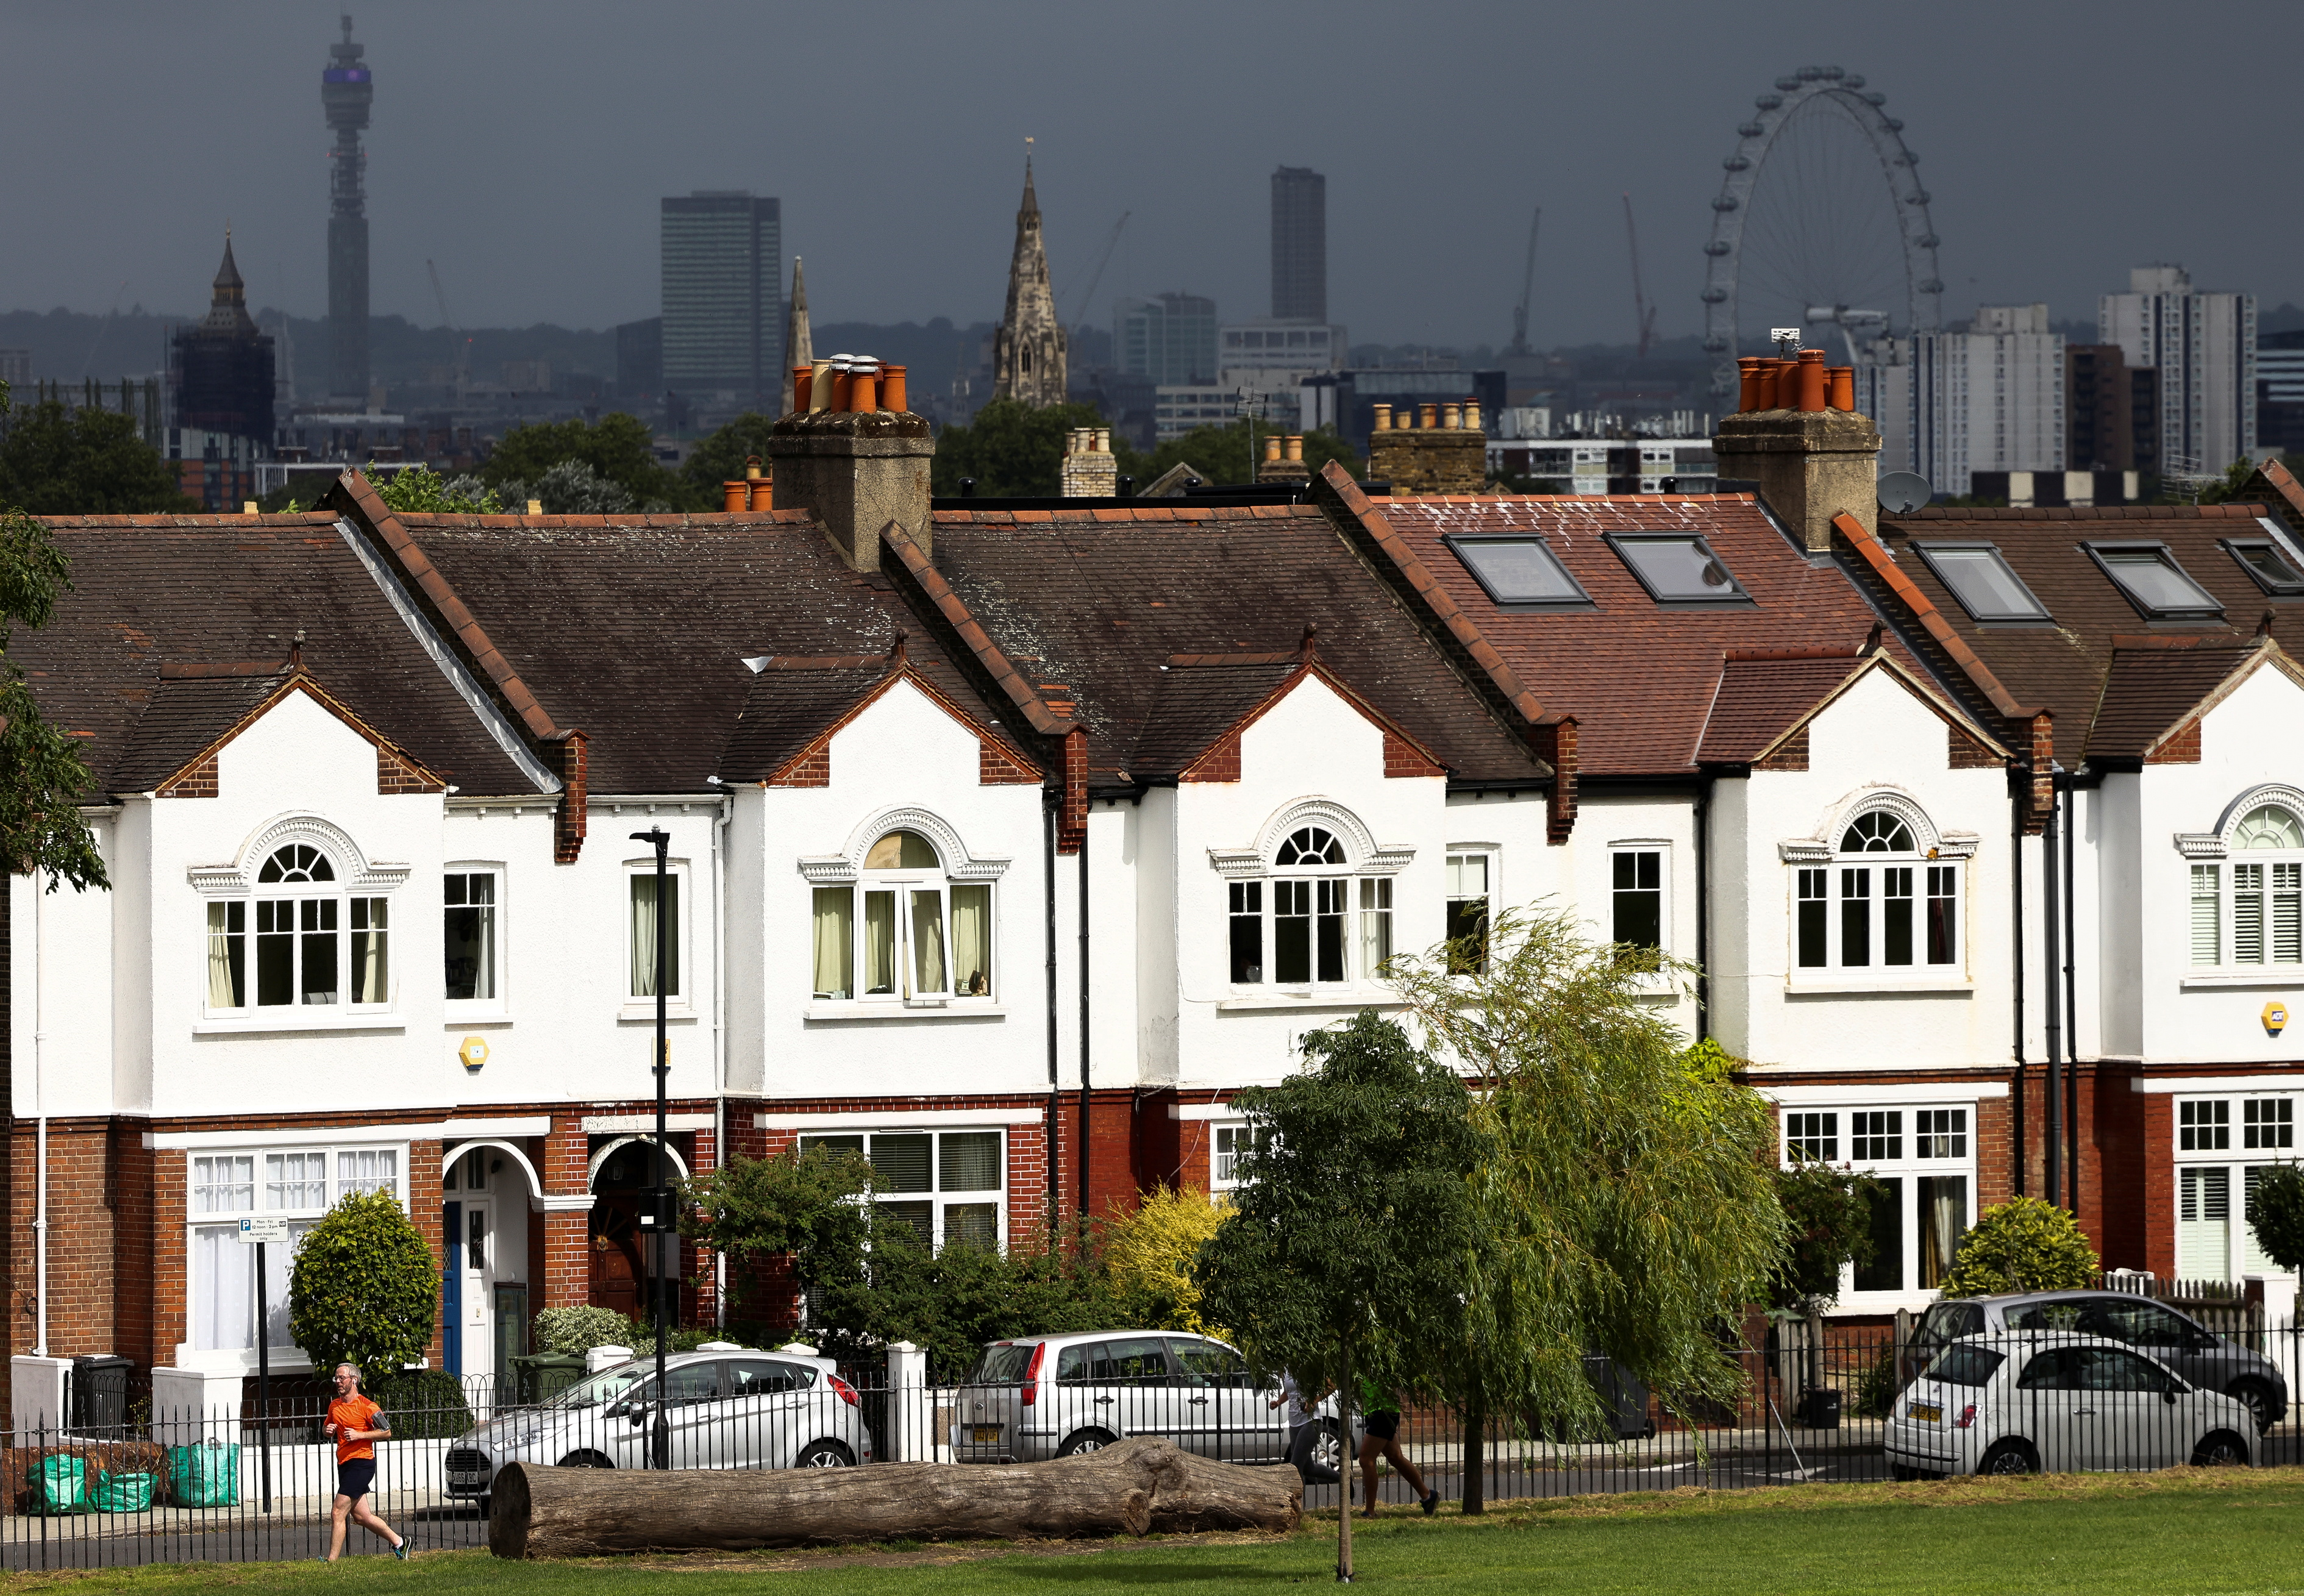 A person jogs past a row of residential housing in south London, Britain, August 6, 2021. REUTERS/Henry Nicholls